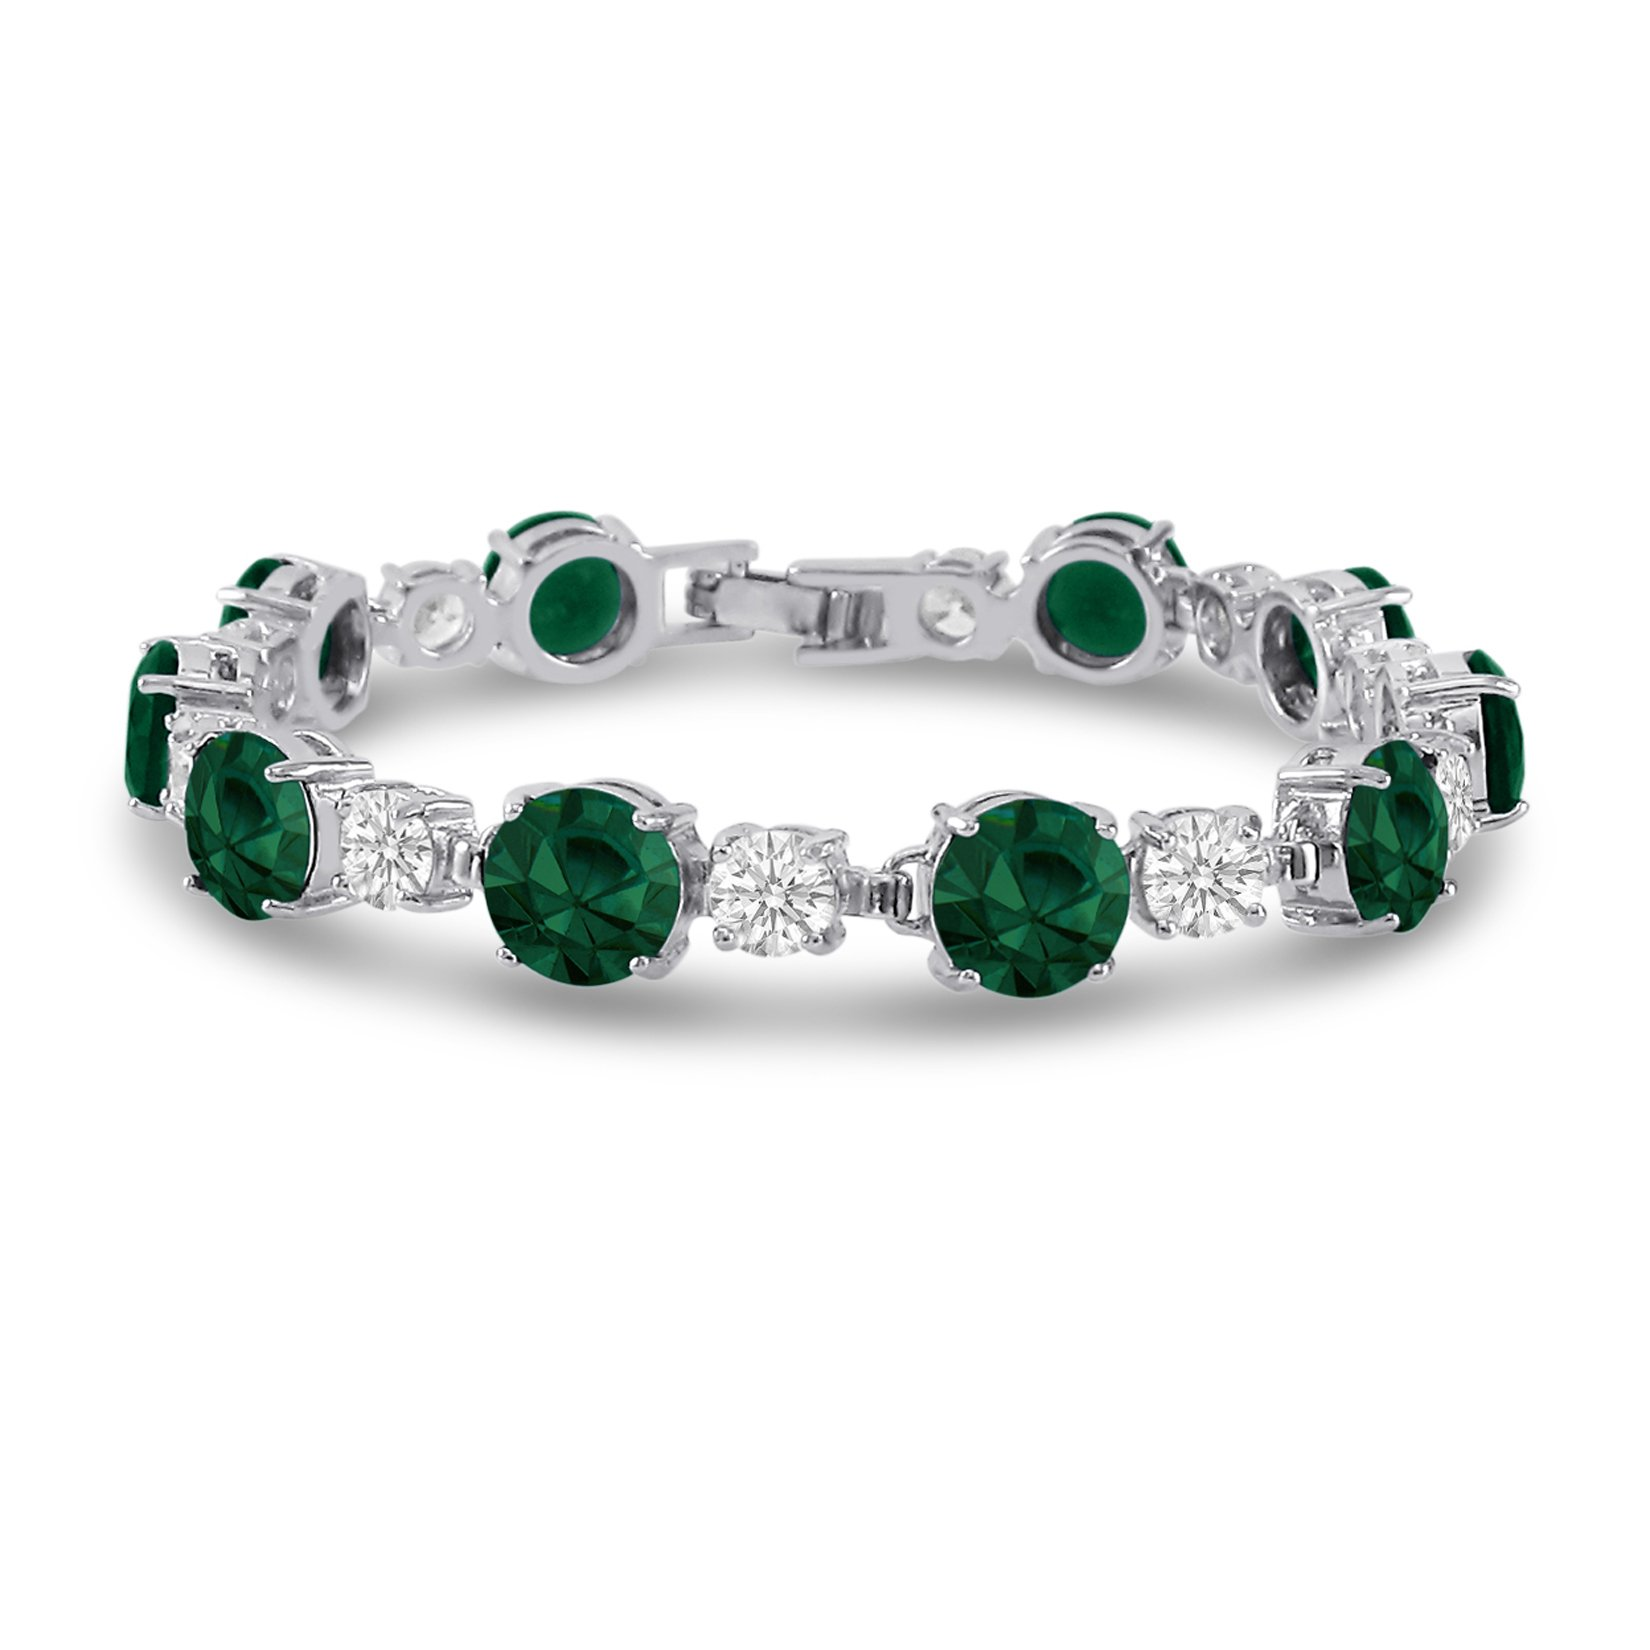 Cubic Zirconia Tennis Bracelet Silver Plated Brass Round Cut Simulated Emerald Green 7 inch